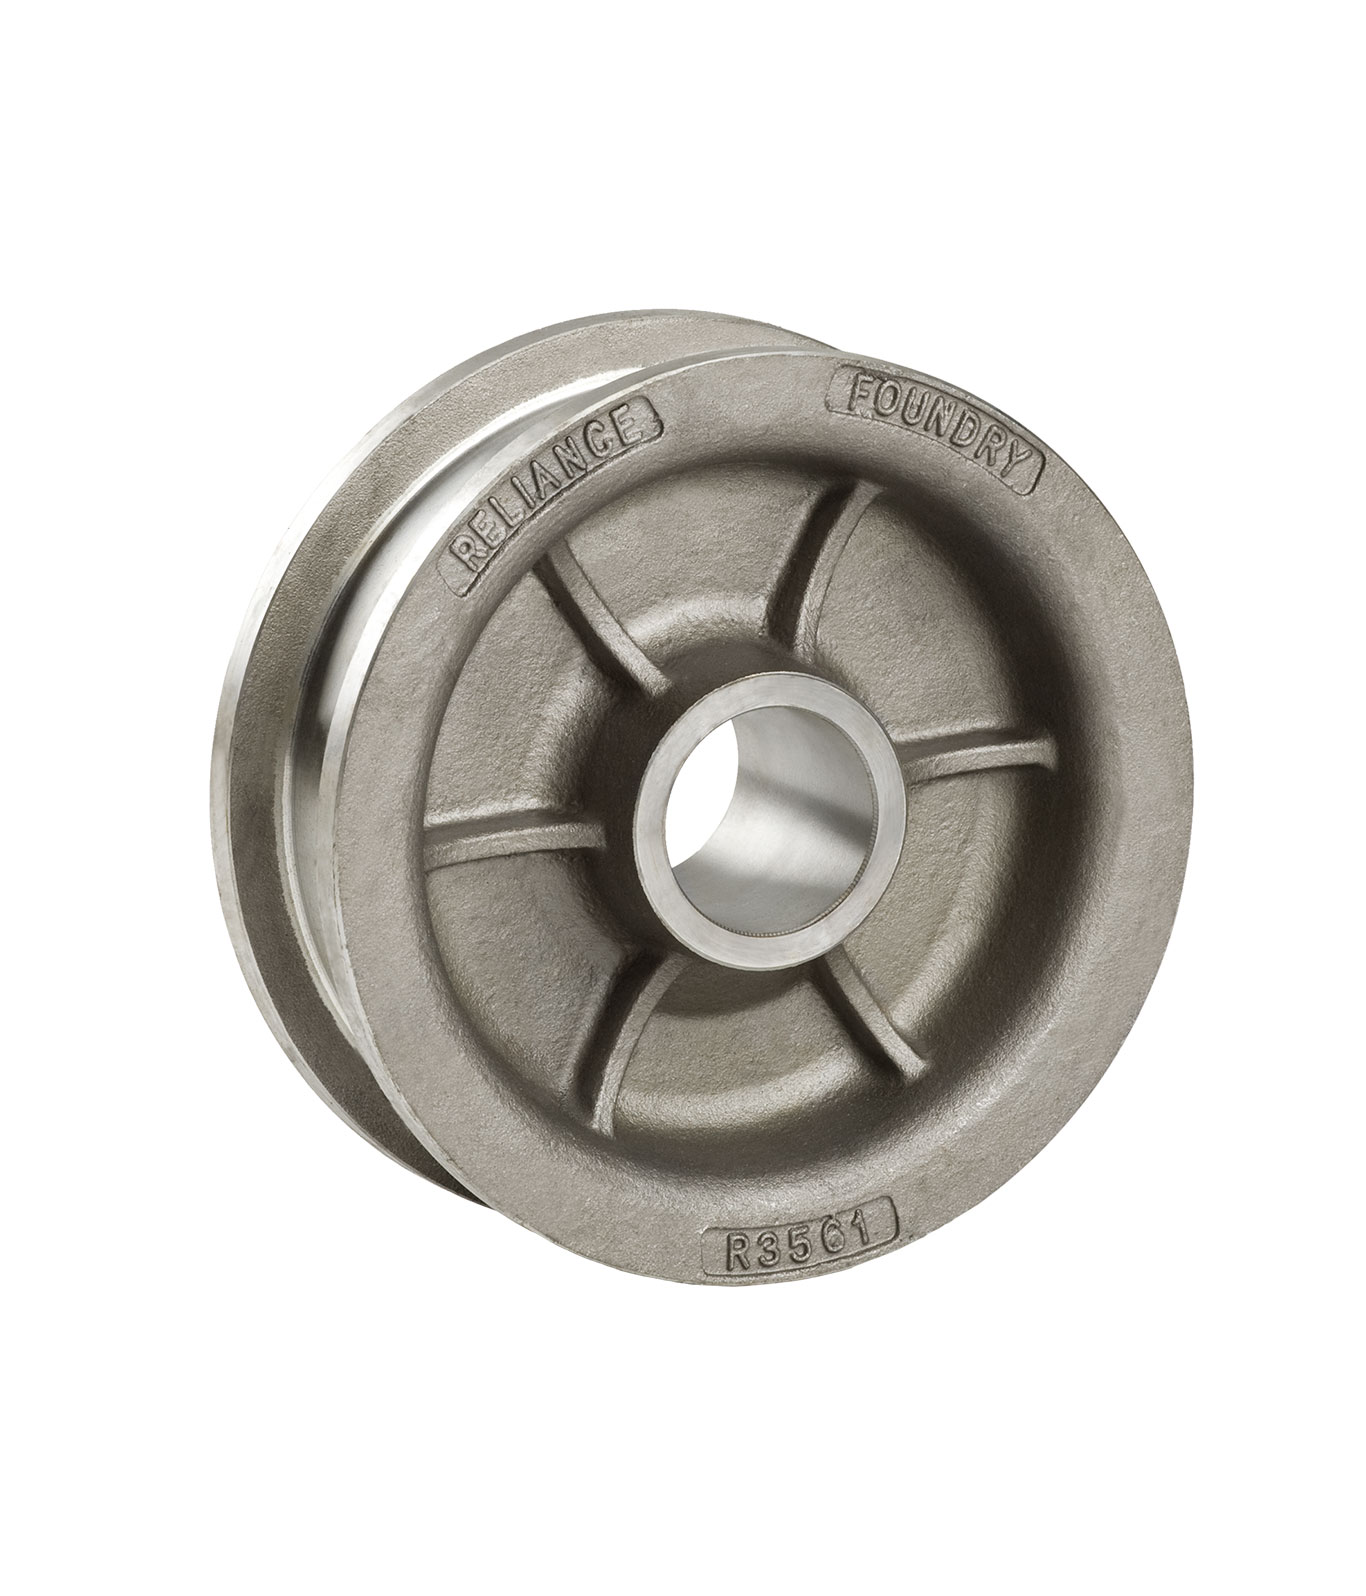 R-3561 Double Flanged Wheel